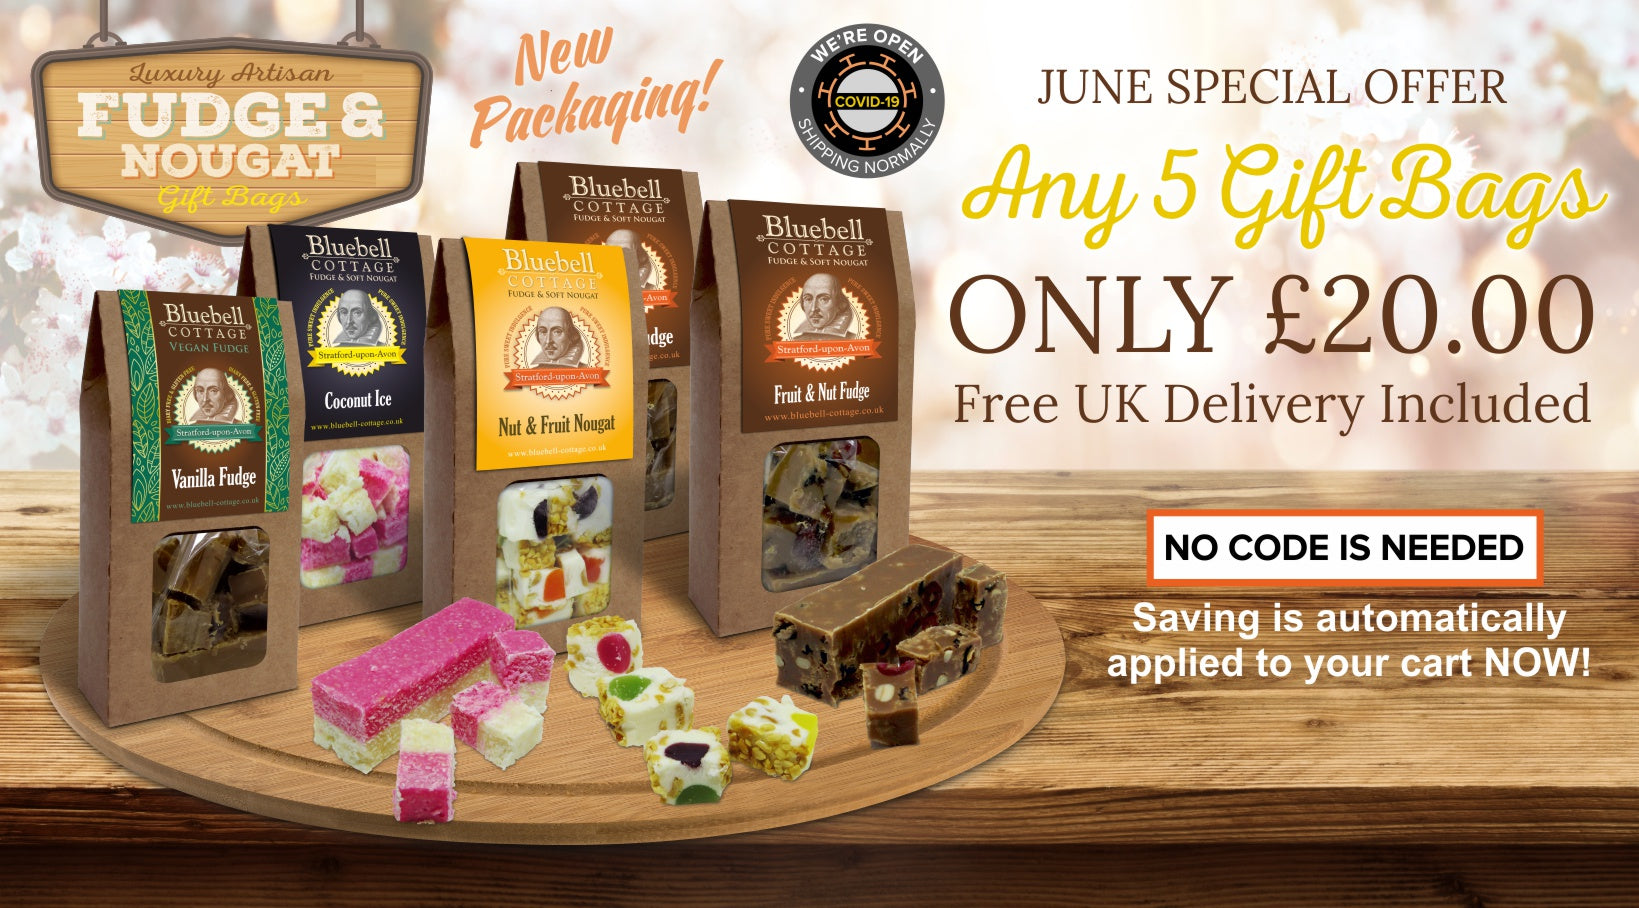 June special offer - delicious fudge and nougat